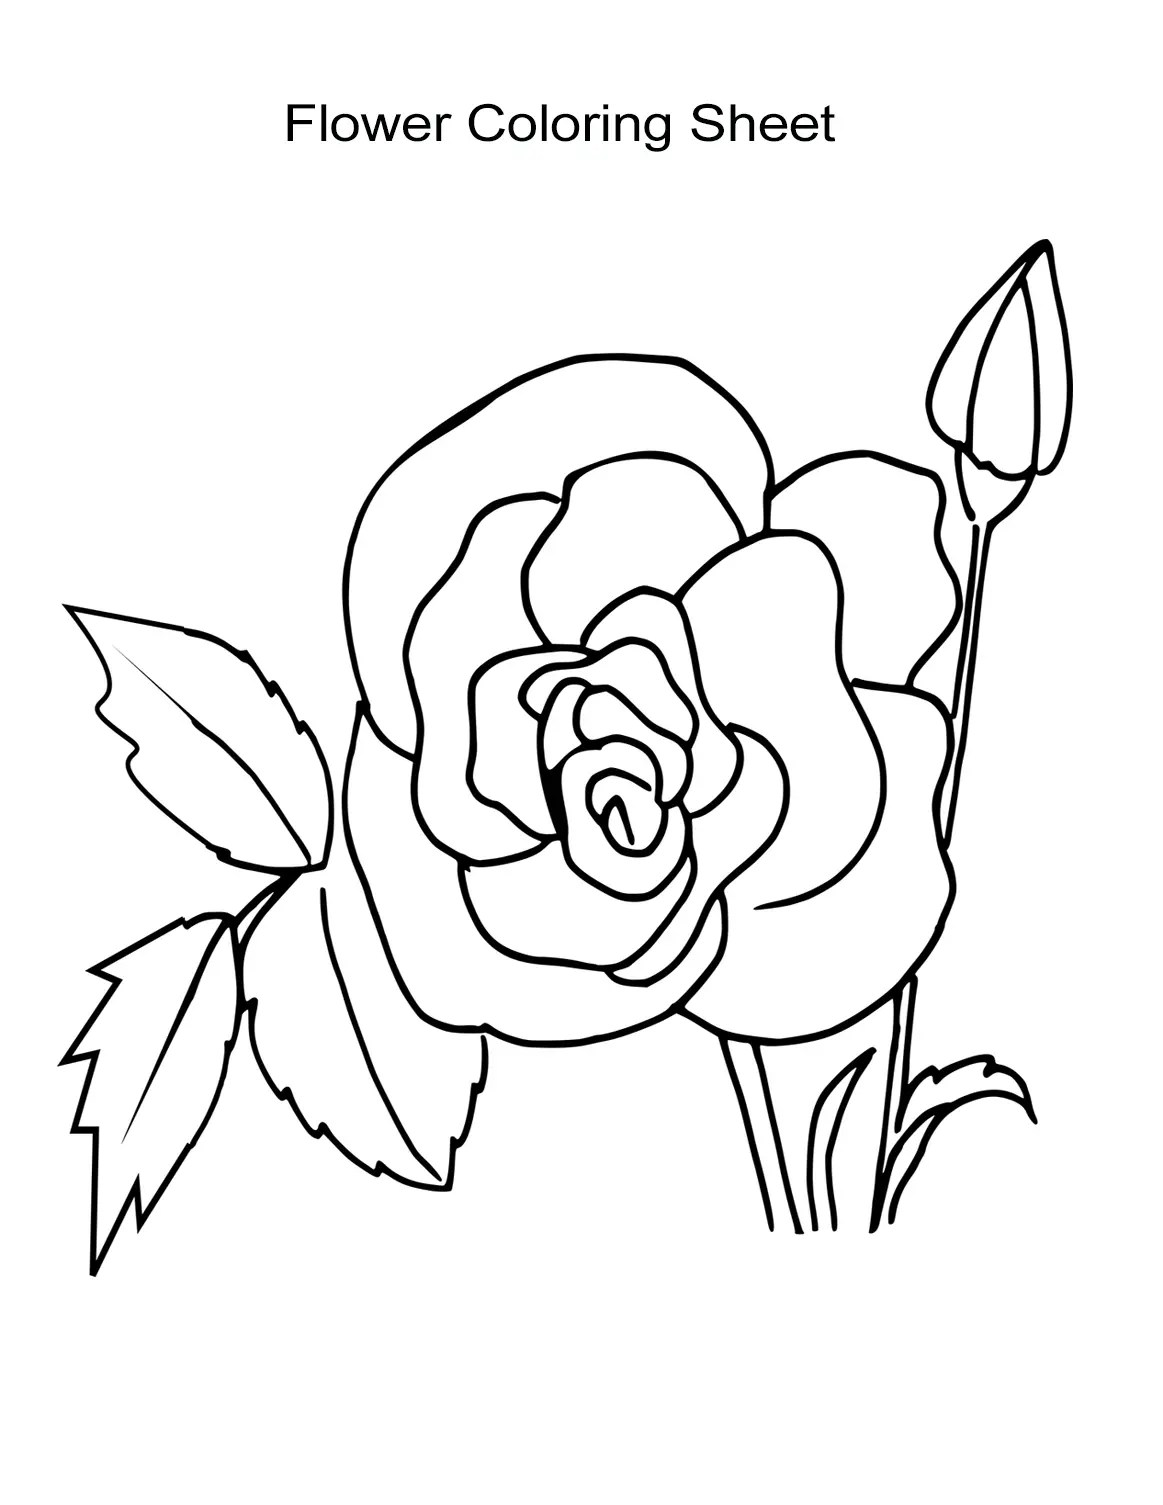 10 Flower Coloring Sheets for Girls and Boys - ALL ESL | free coloring pages for girls-flowers